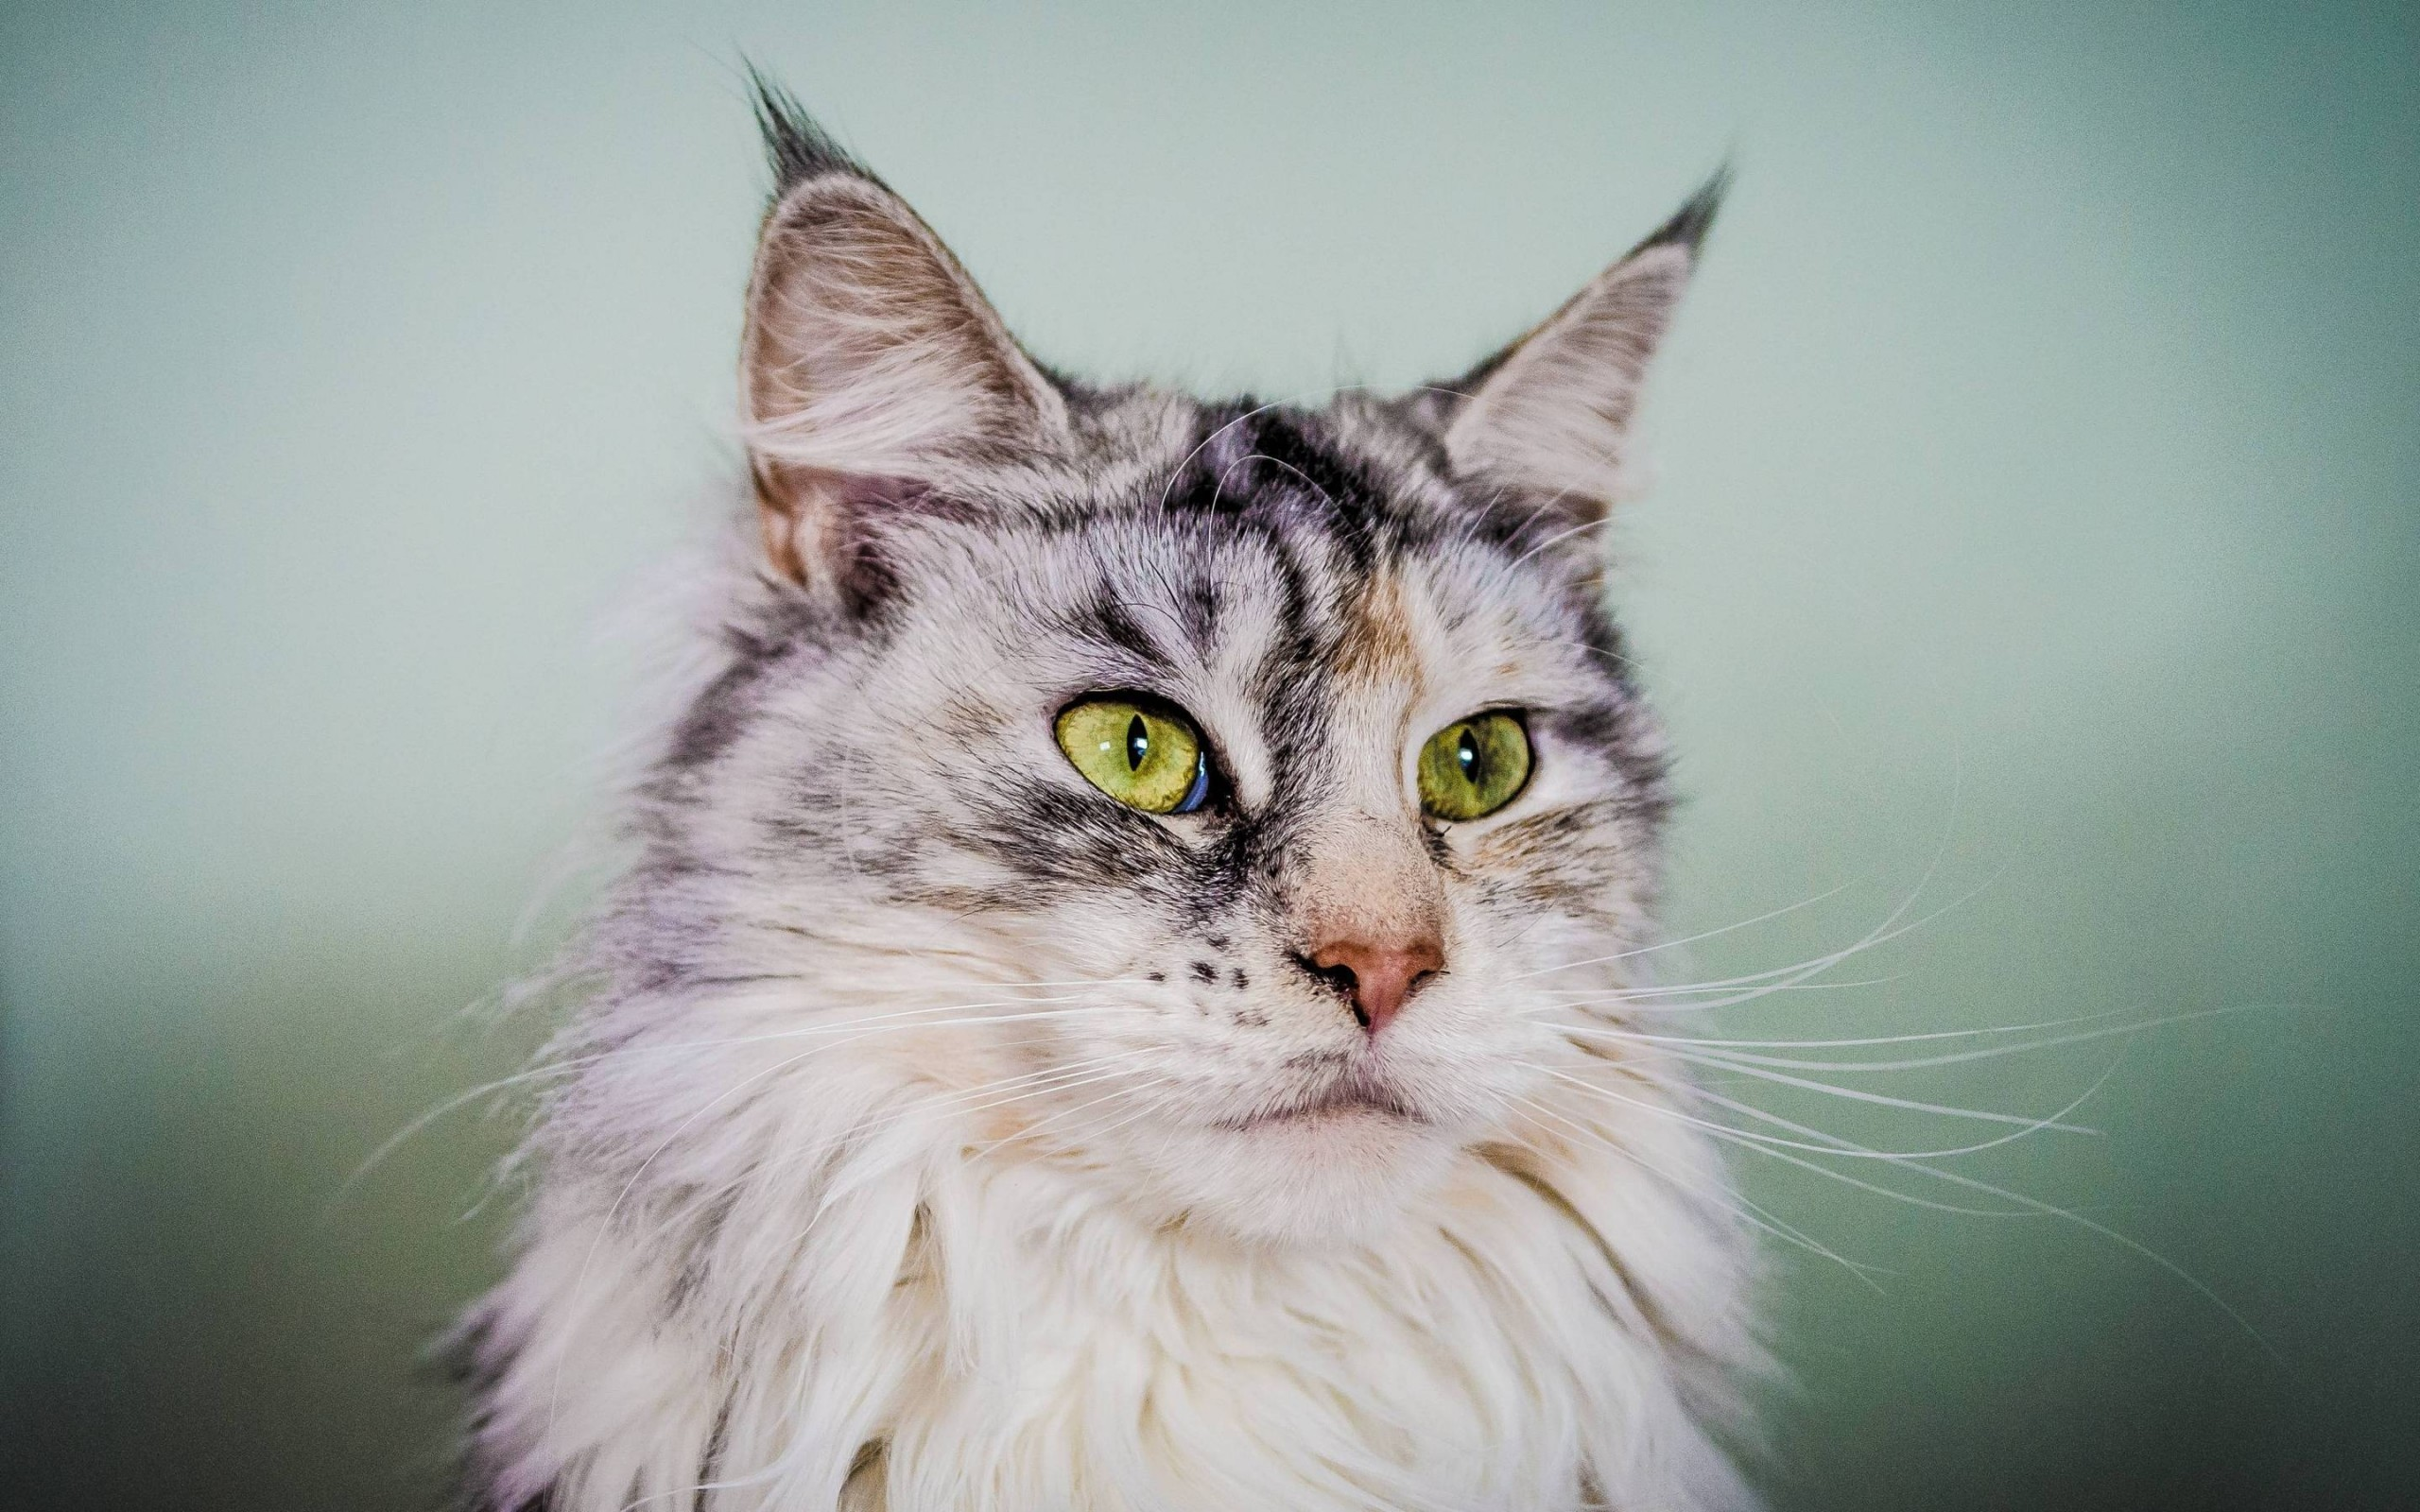 Res: 2560x1600, Silver Maine Coon Cat with Green Eyes Wallpaper